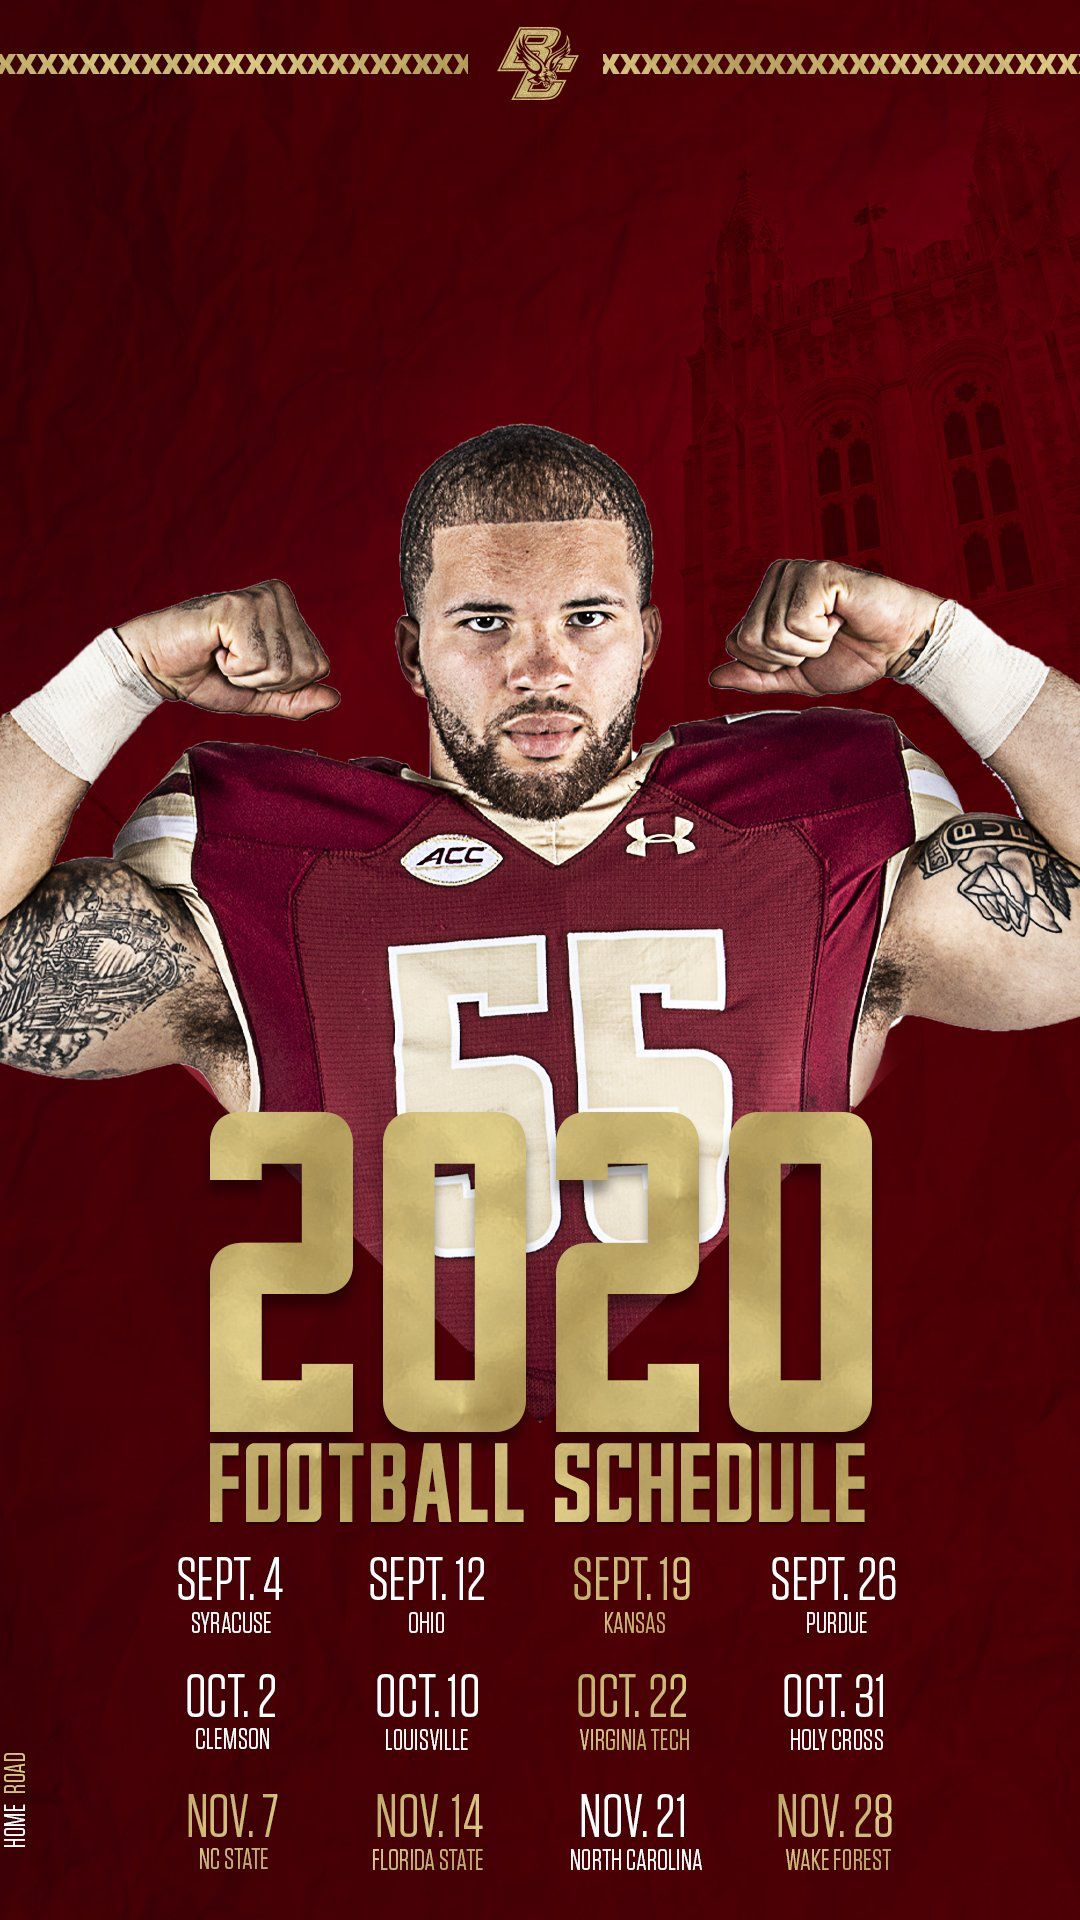 Pin by Nathaniel Guice on College Sports in 2020 (With